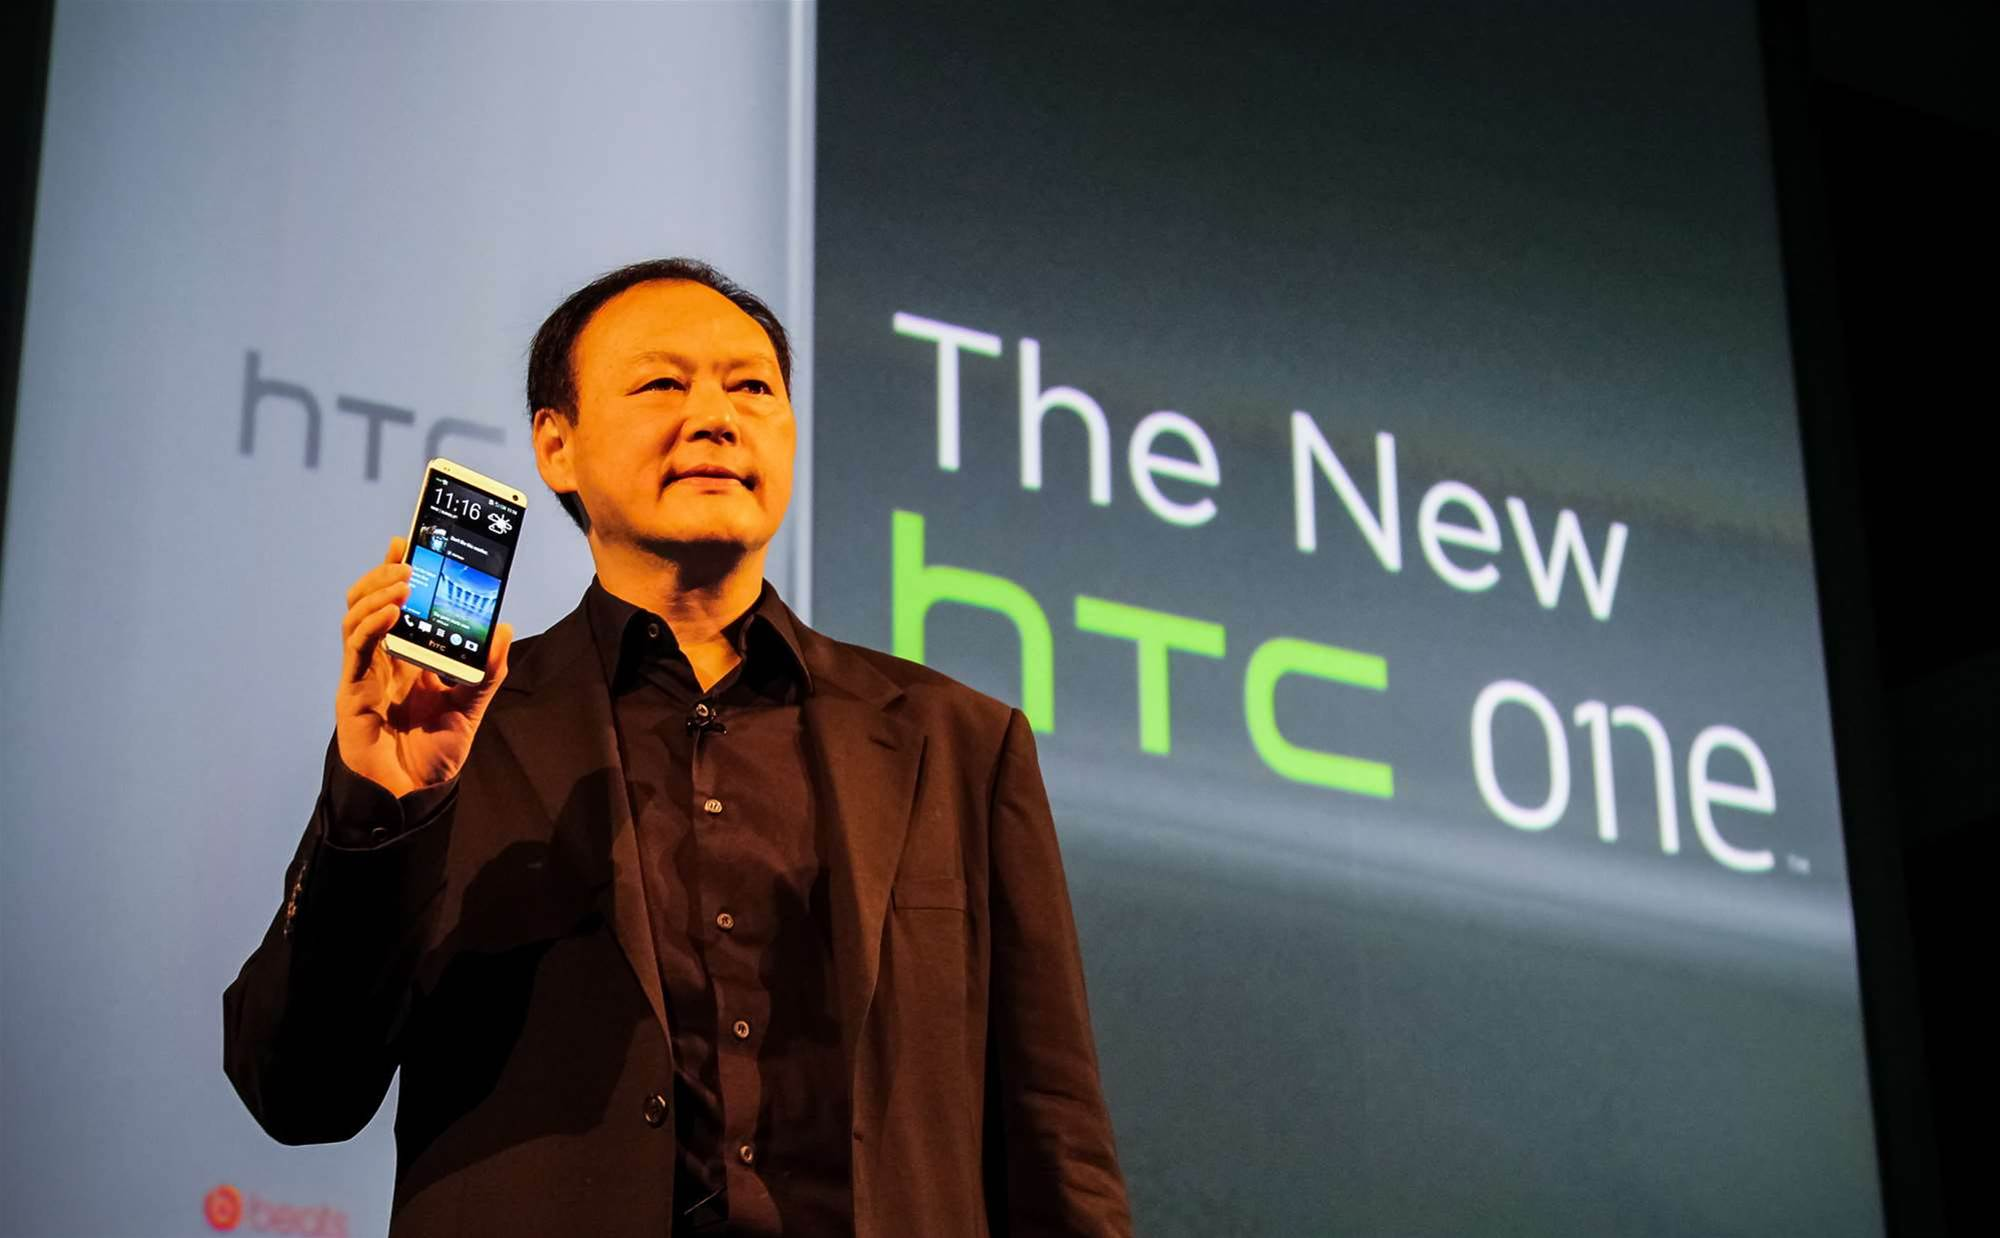 HTC results underwhelm yet again